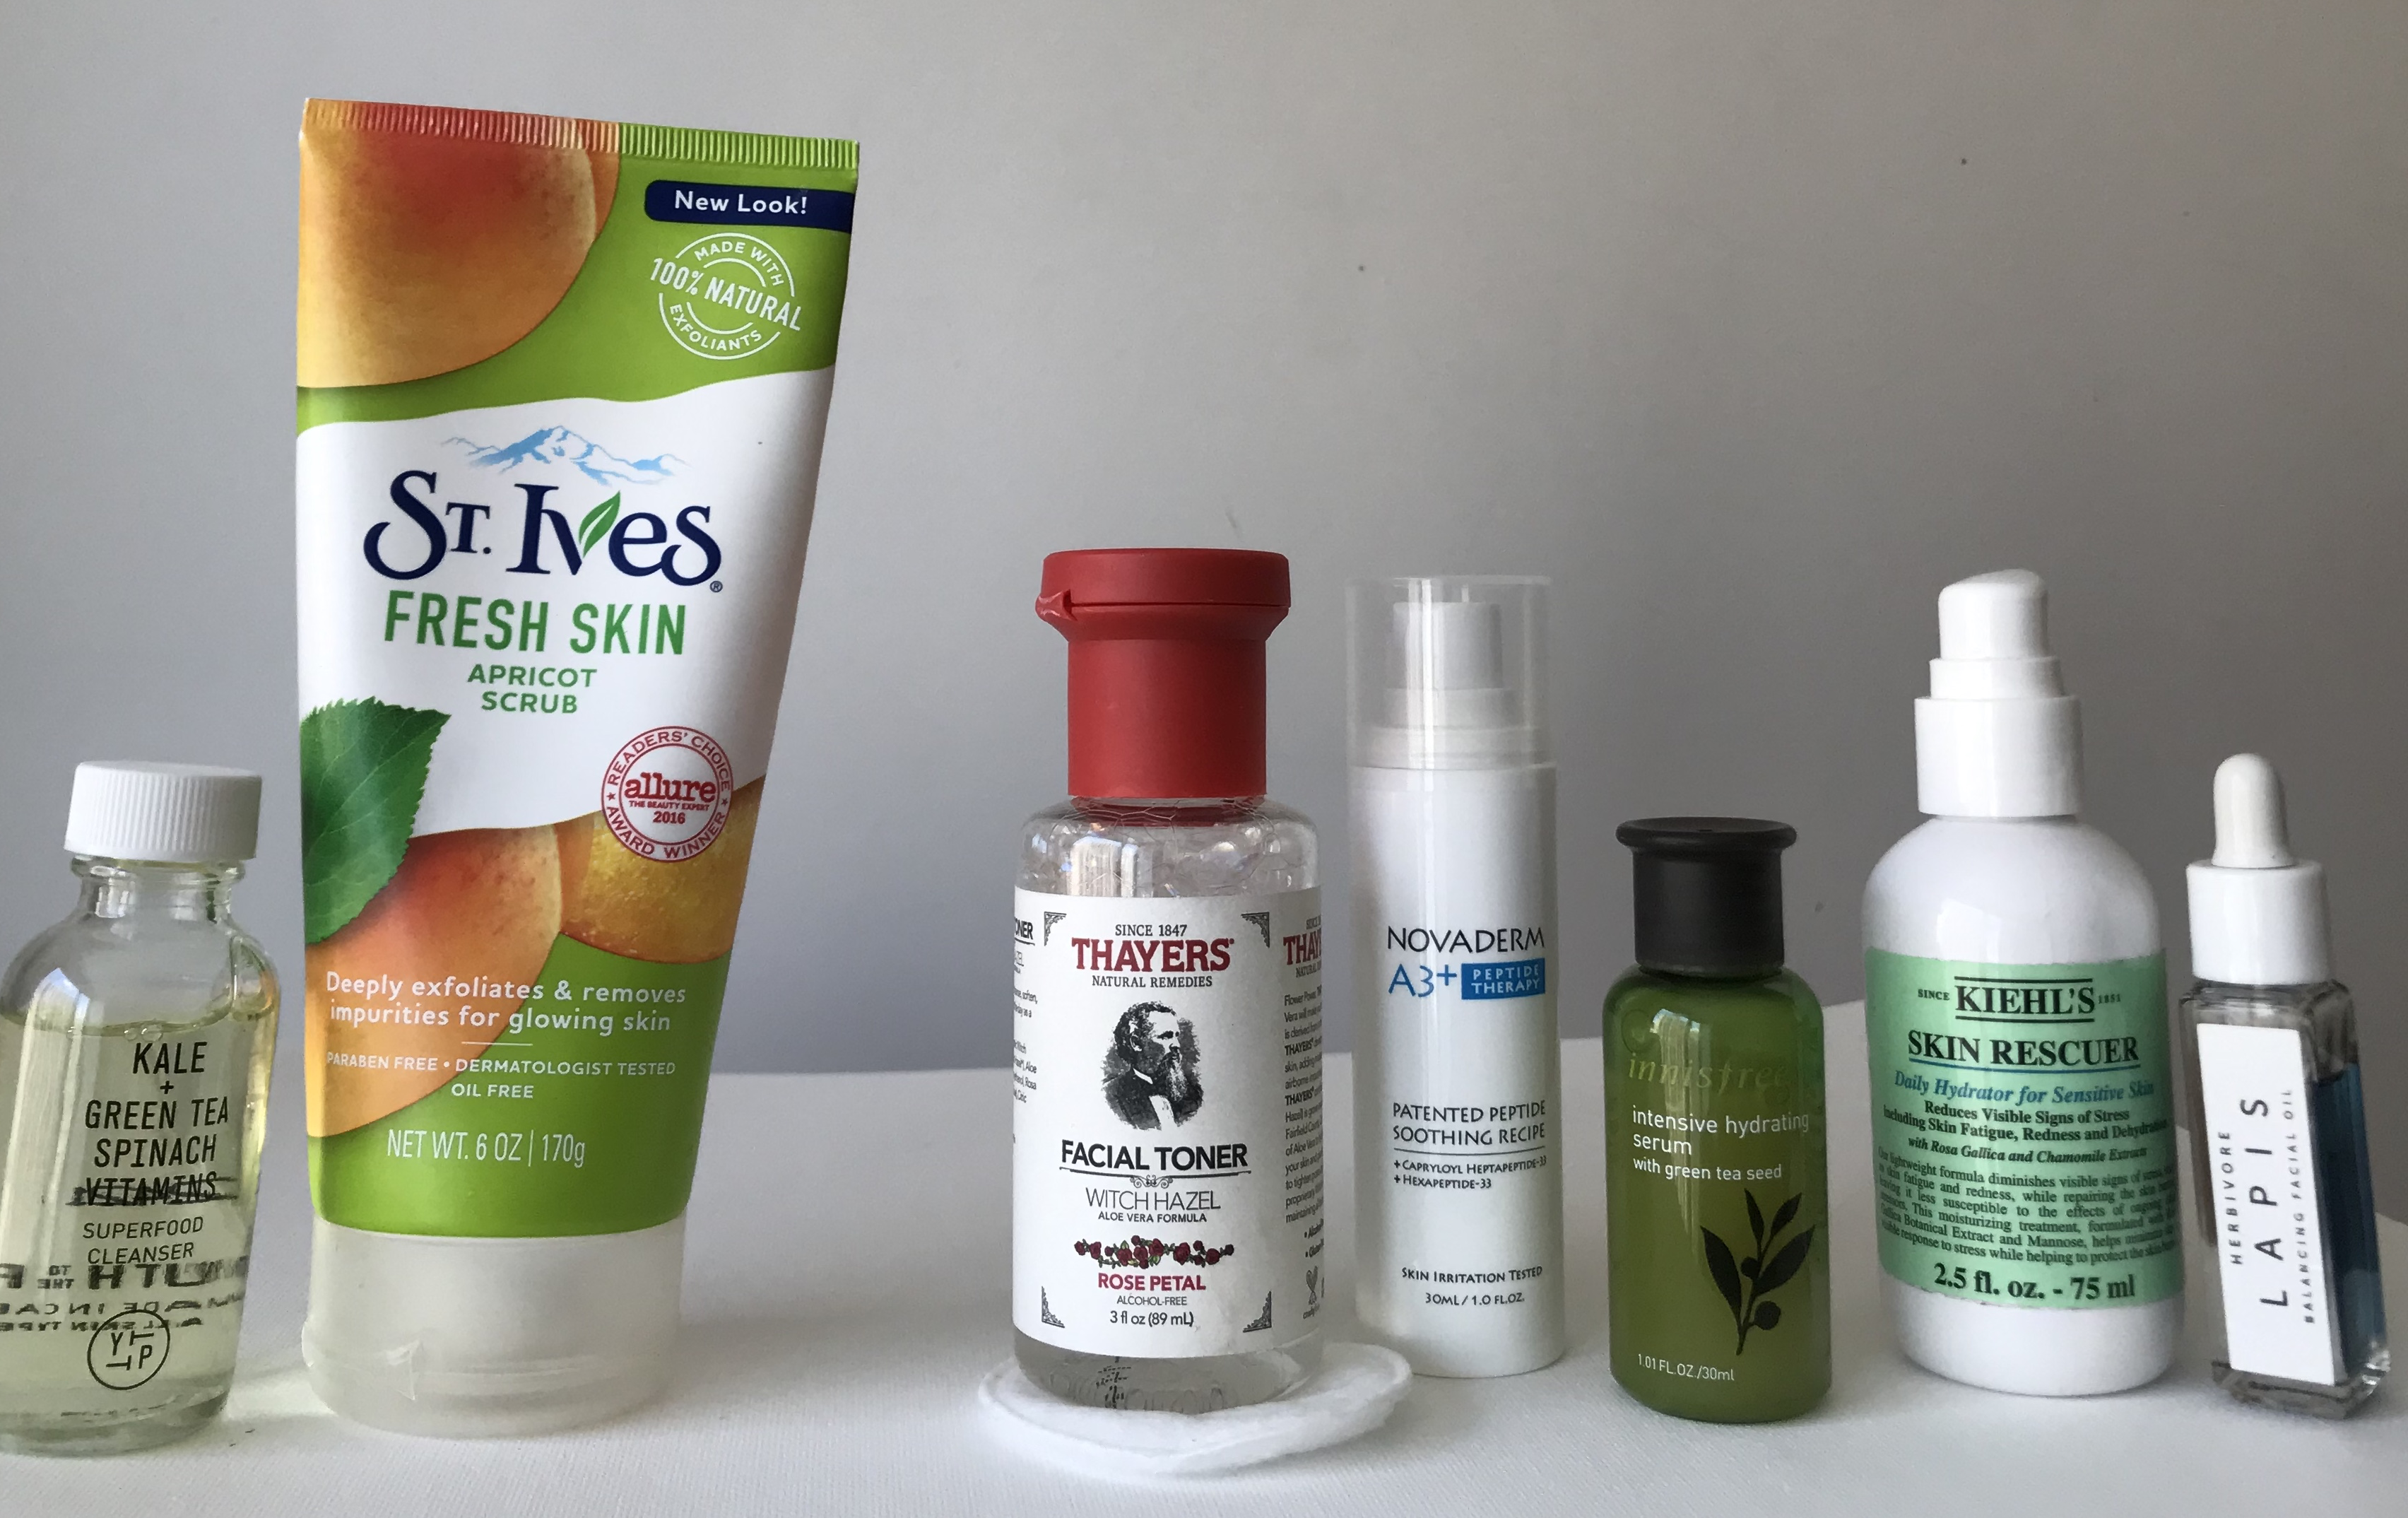 ten-step korean skincare routine? try two | washington